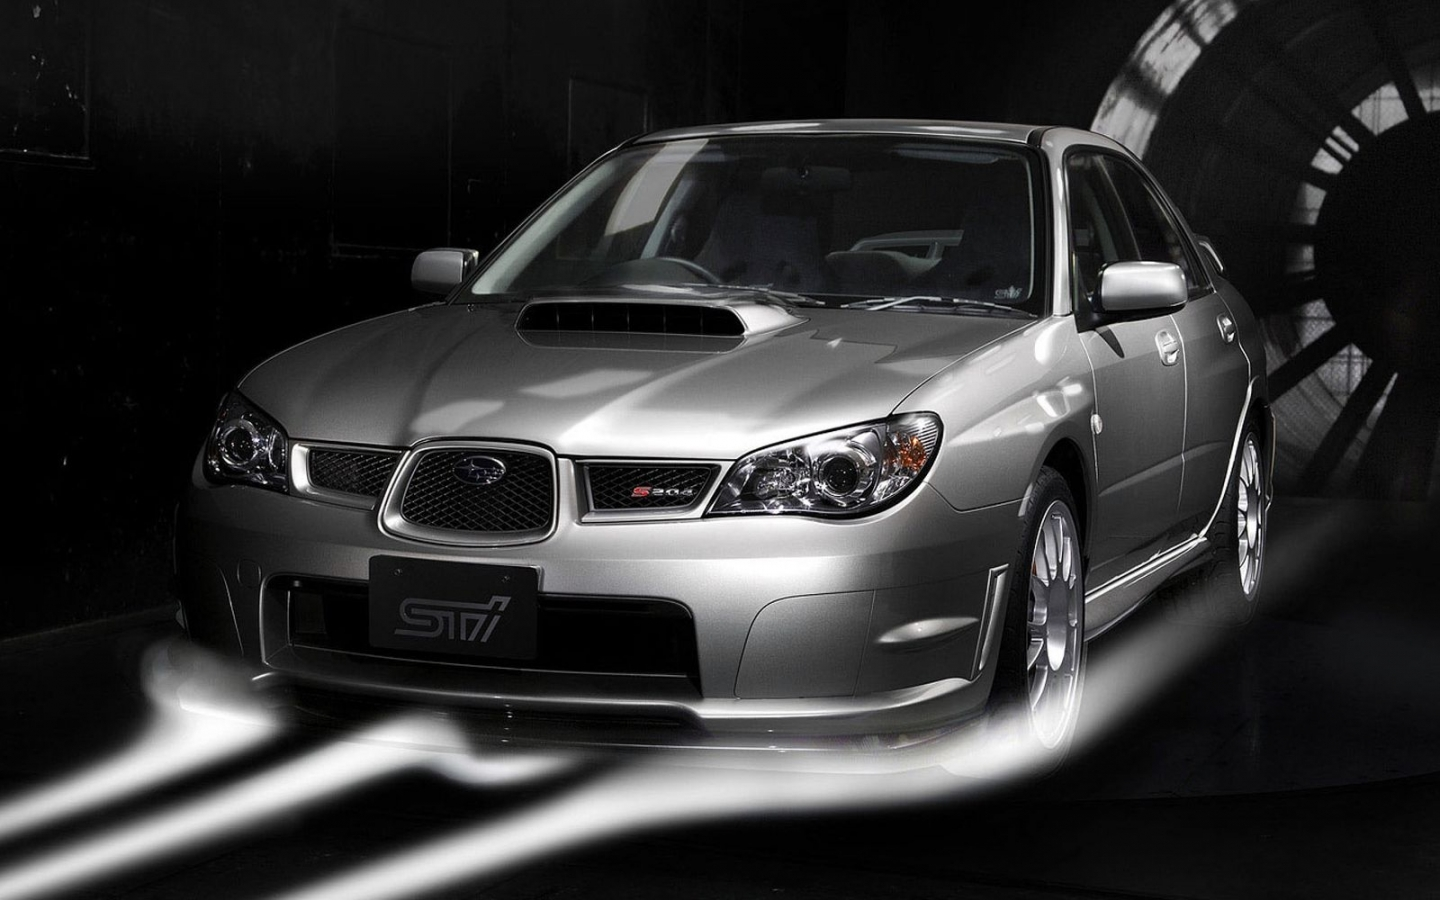 45673 download wallpaper Transport, Auto, Subaru screensavers and pictures for free